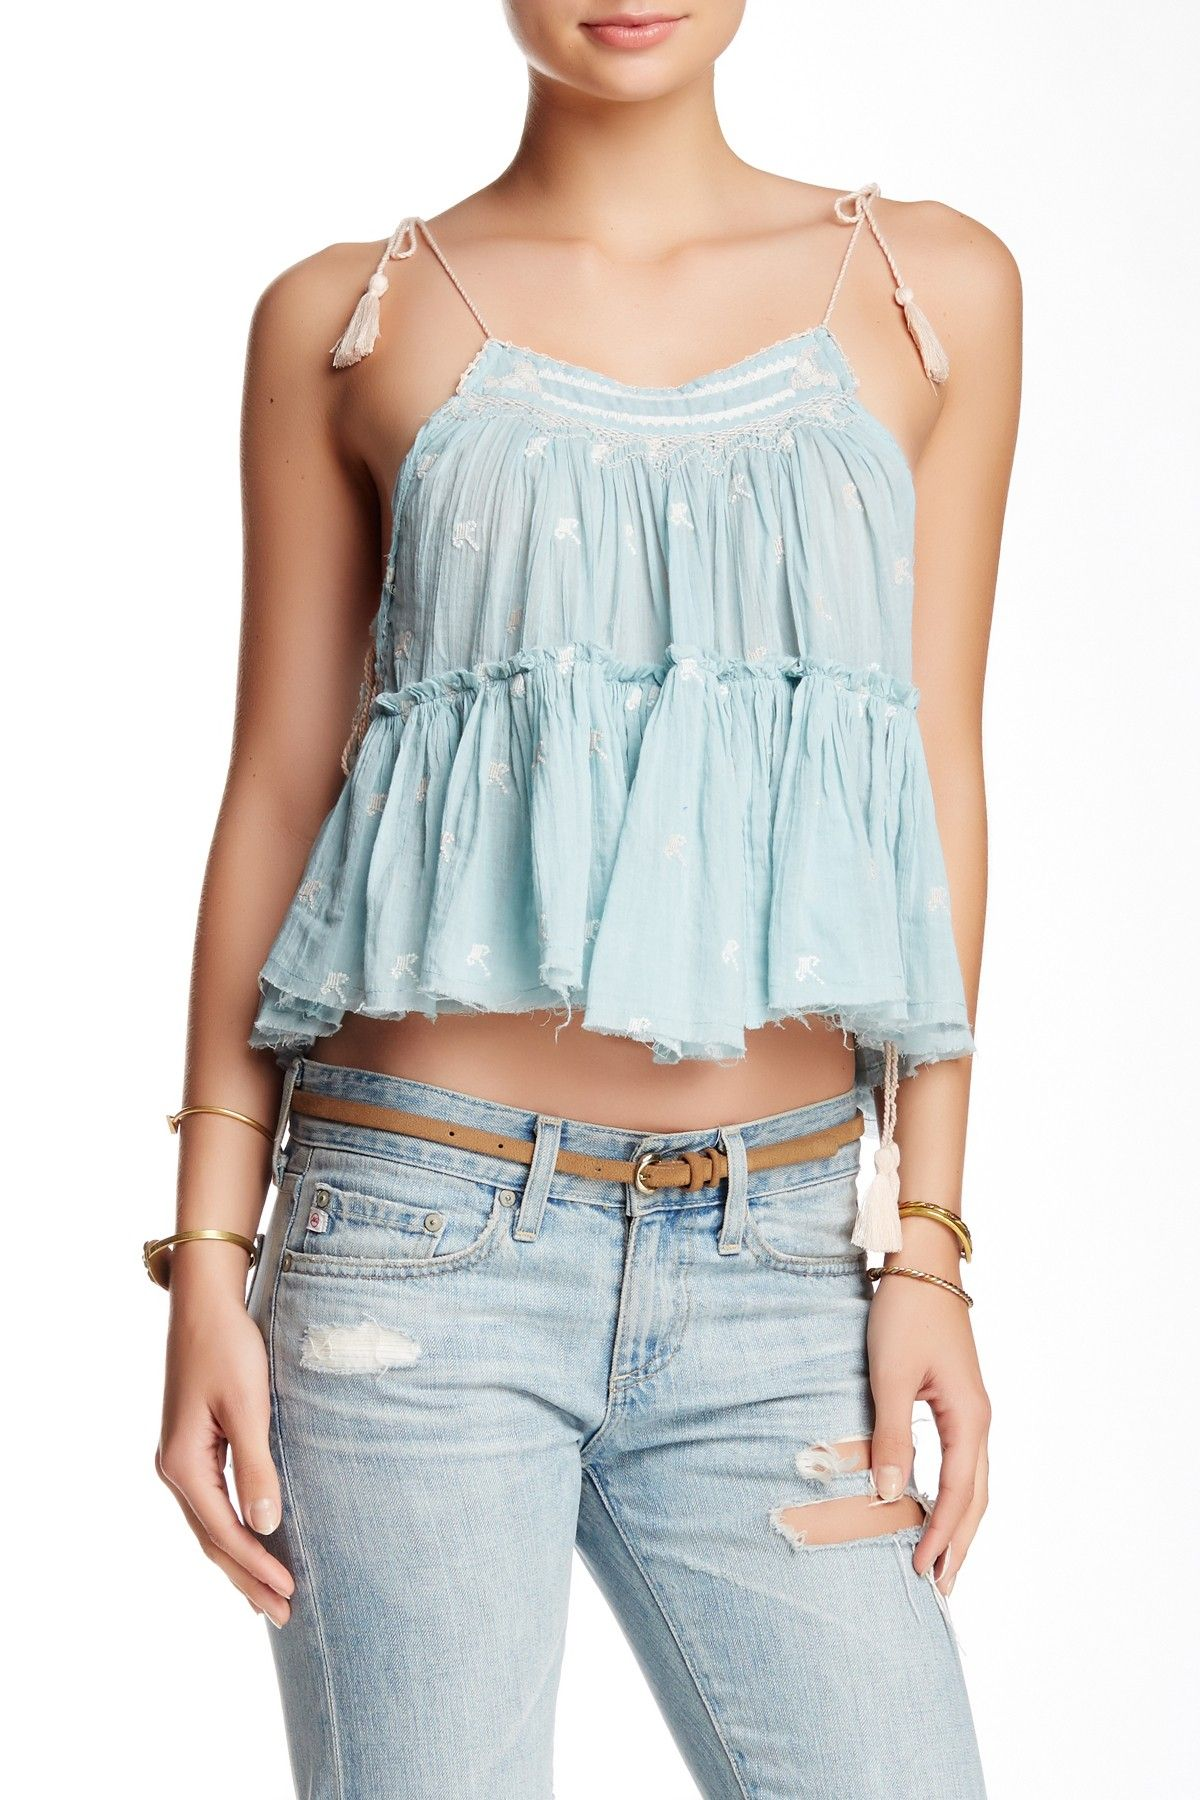 Free People - Magic Power Crinkly Cotton Tank at Nordstrom Rack. Free Shipping on orders over $100.